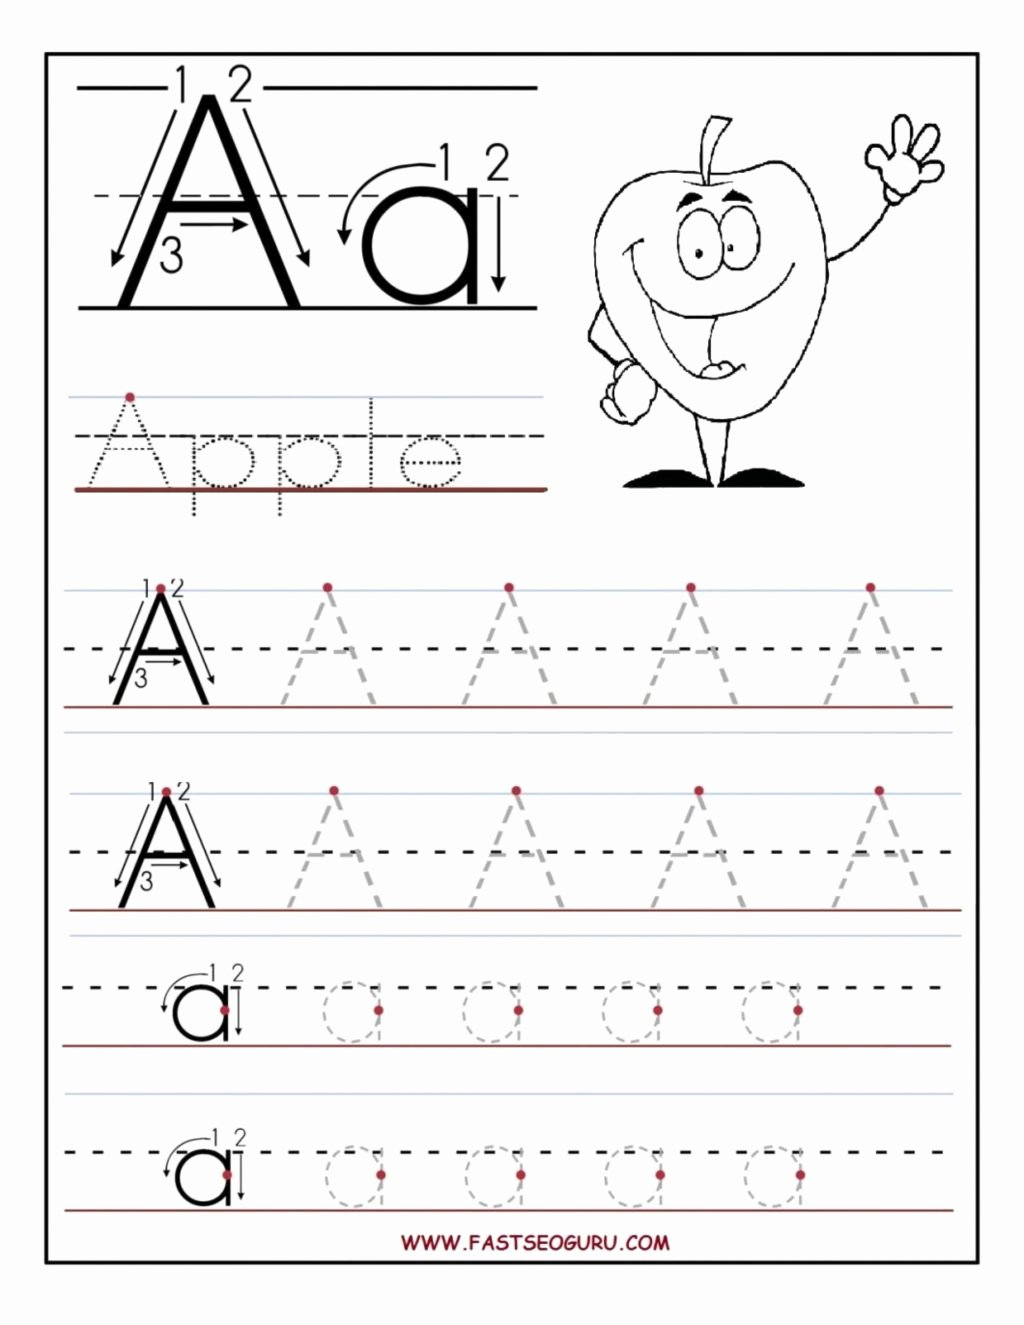 Printable Letter Tracing Worksheets for Preschoolers Printable Worksheet Worksheet Trace Letters Tracing Worksheets for